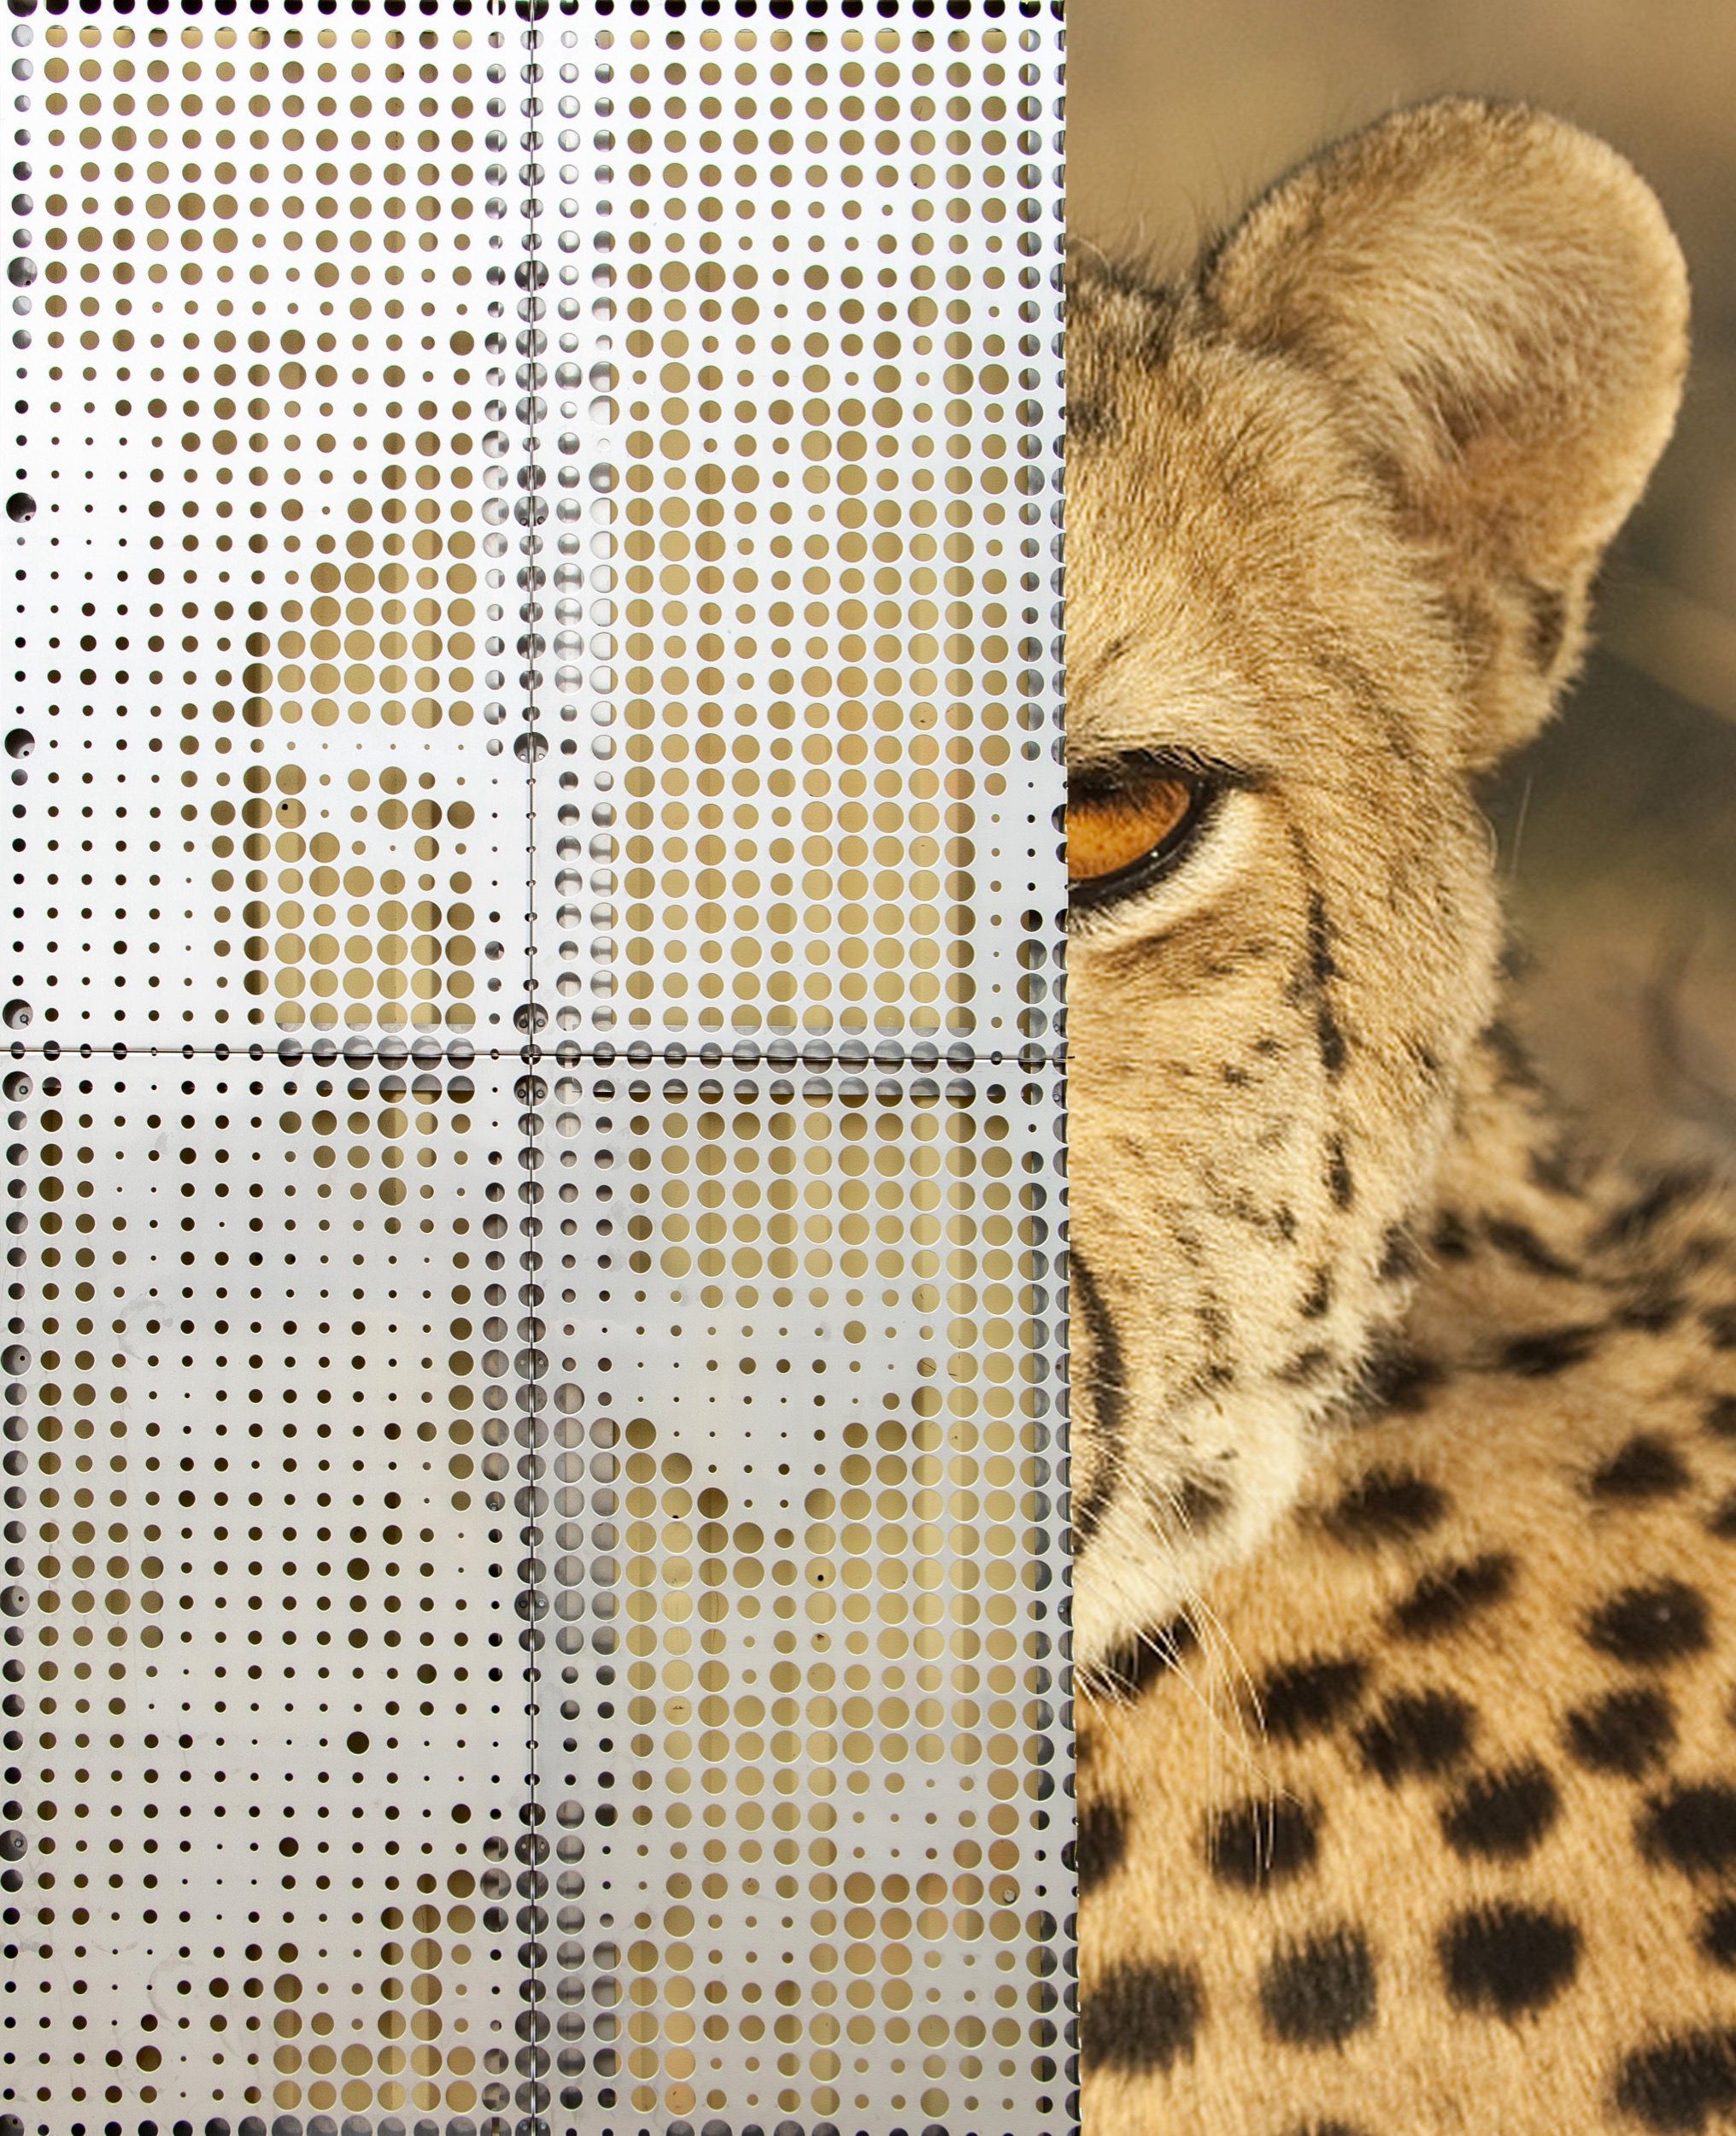 IMAGEWALL PROLOGUE ENABLES ARCHITECTS AND DESIGNERS TO APPLY IMAGERY TO METAL THROUGH THE USE OF PRECISE PERFORATIONS.